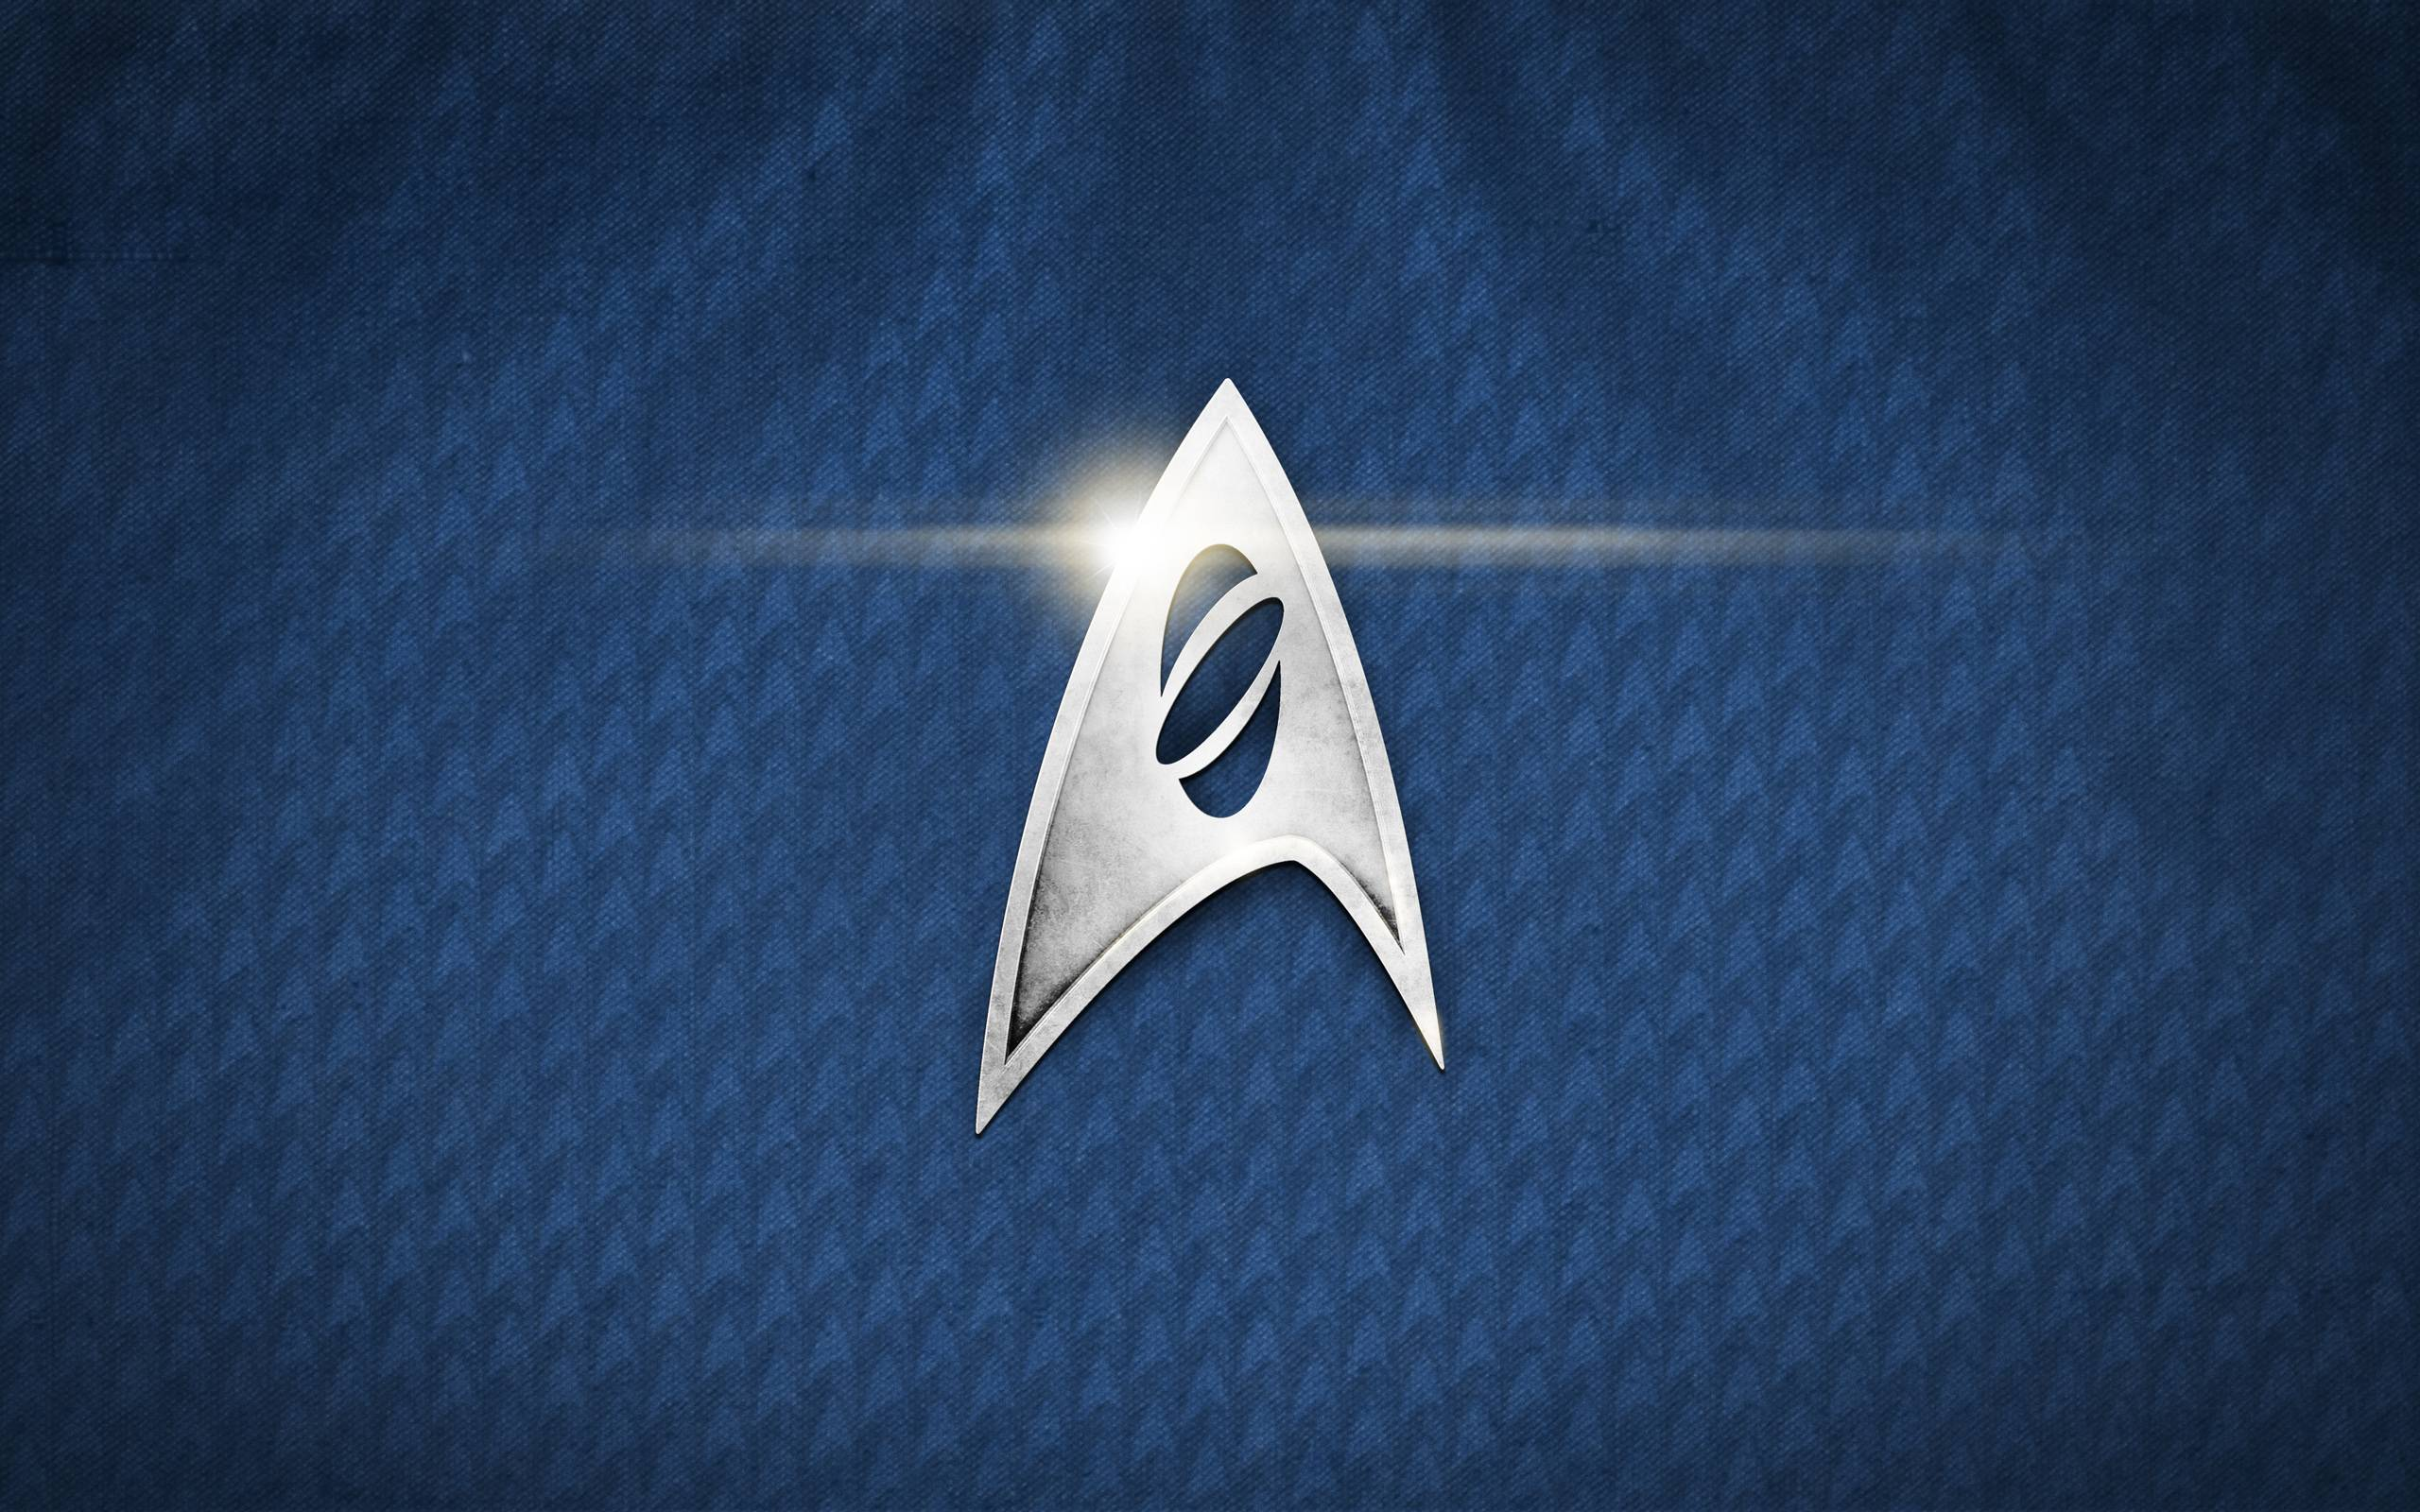 star trek wallpaper by - photo #35